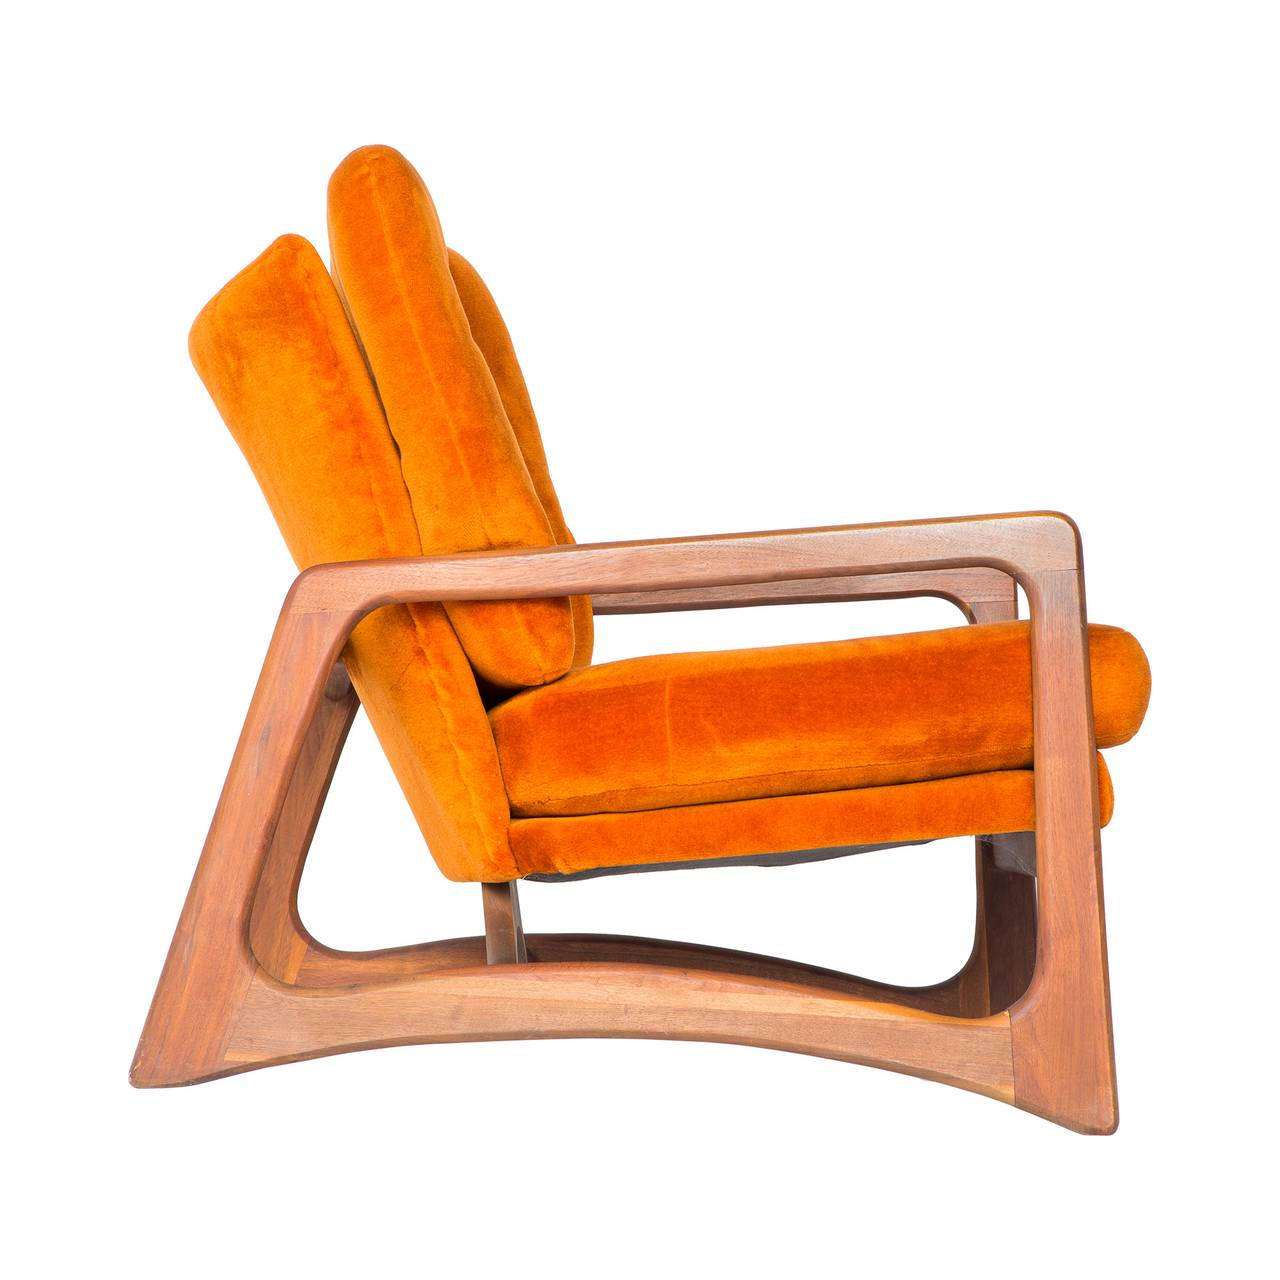 Adrian Pearsall of Craft Associates is one of Mid-Century's most prolific names in atomic design. This beautiful lounge chair features original orange upholstery and a walnut frame. In great vintage condition.